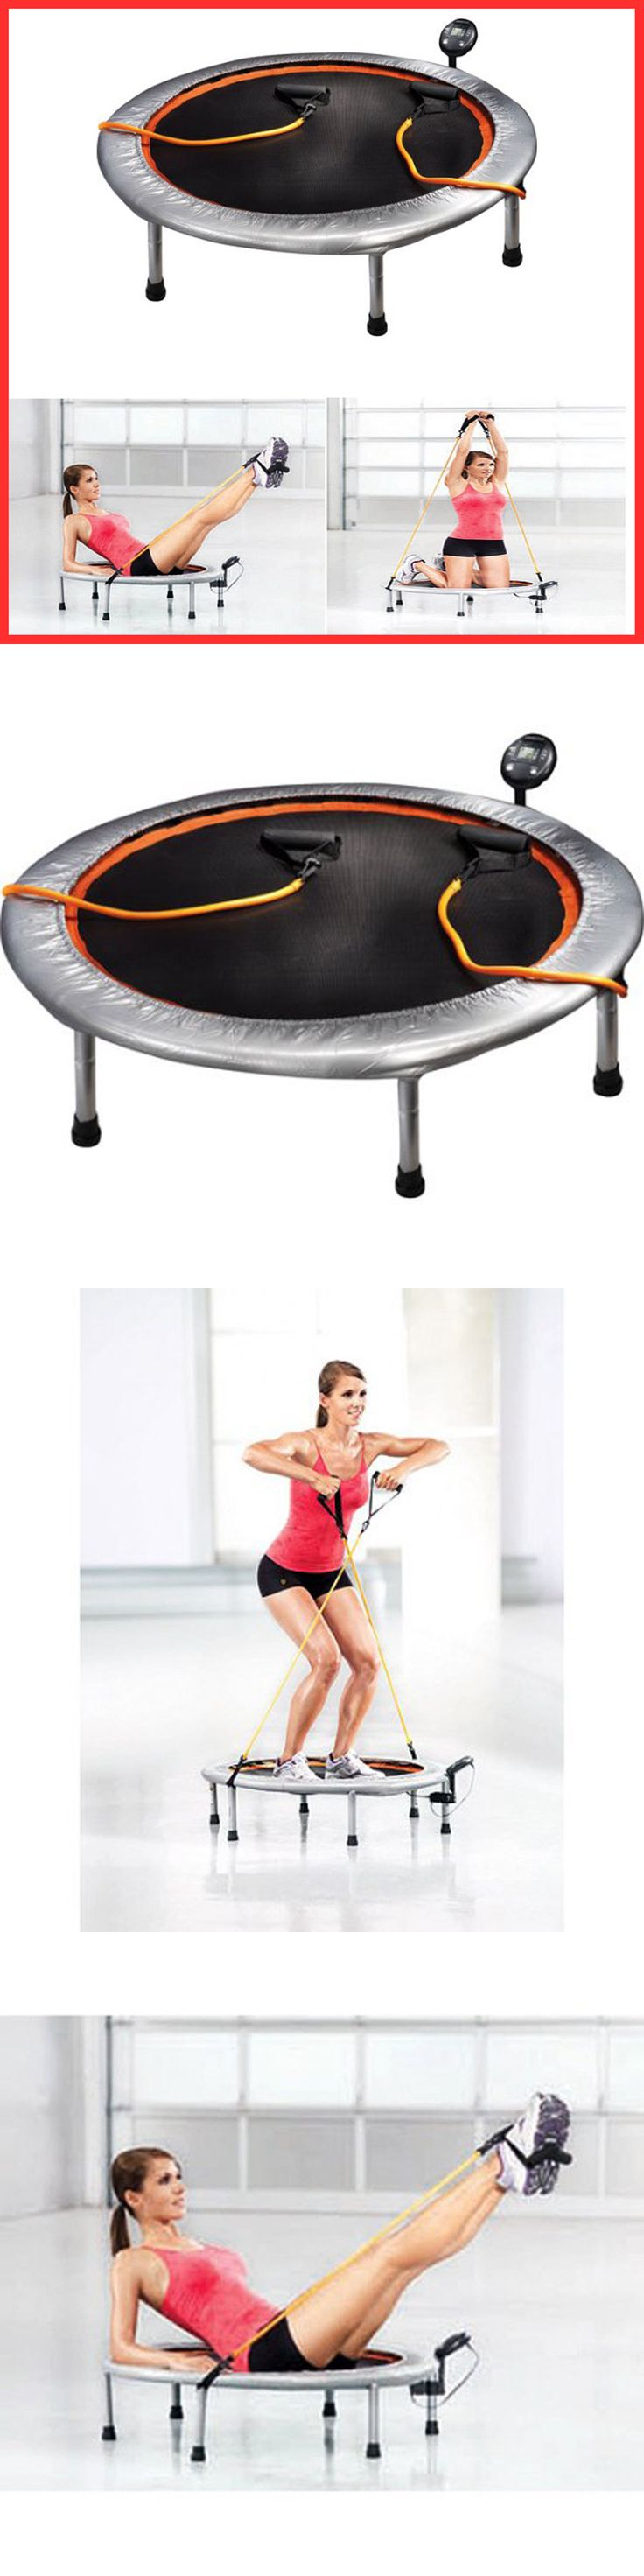 Trampolines 57275: 36 Mini Trampoline Gym Circuit Trainer Fitness Exercise Workout Cardio Rebounder -> BUY IT NOW ONLY: $33.58 on eBay!